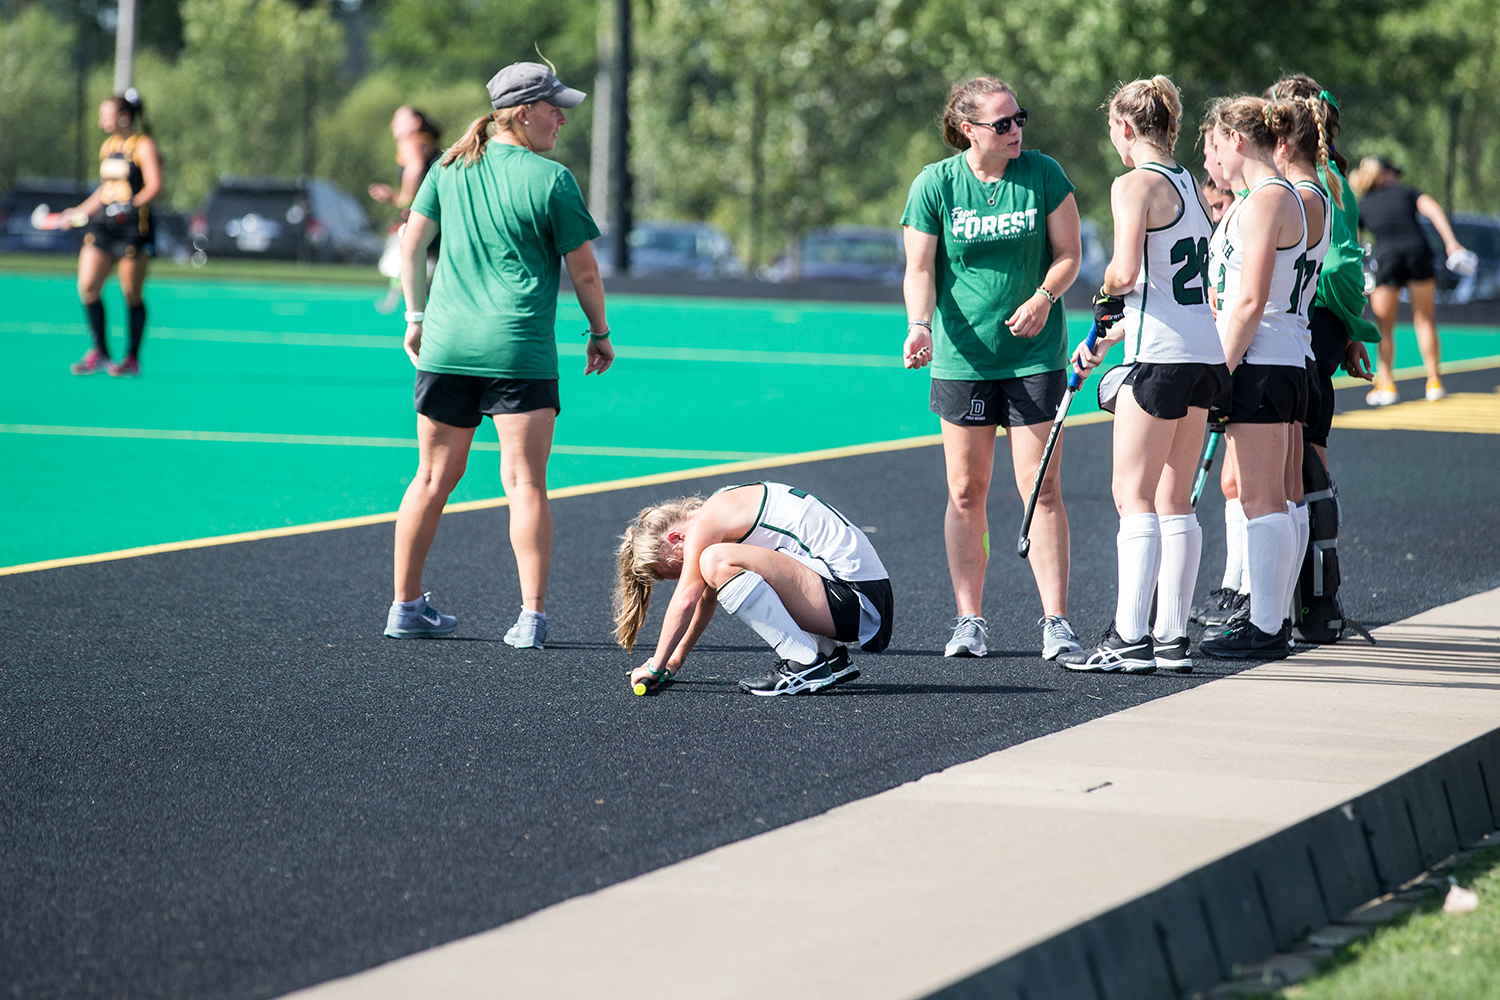 Dartmouth+players+listen+to+the+coaching+staff+during+a+field+hockey+match+between+Iowa+and+Dartmouth+College+at+Grant+Field+on+Friday%2C+August+31%2C+2018.+The+Hawkeyes+shut+out+the+Big+Green%2C+6-0.